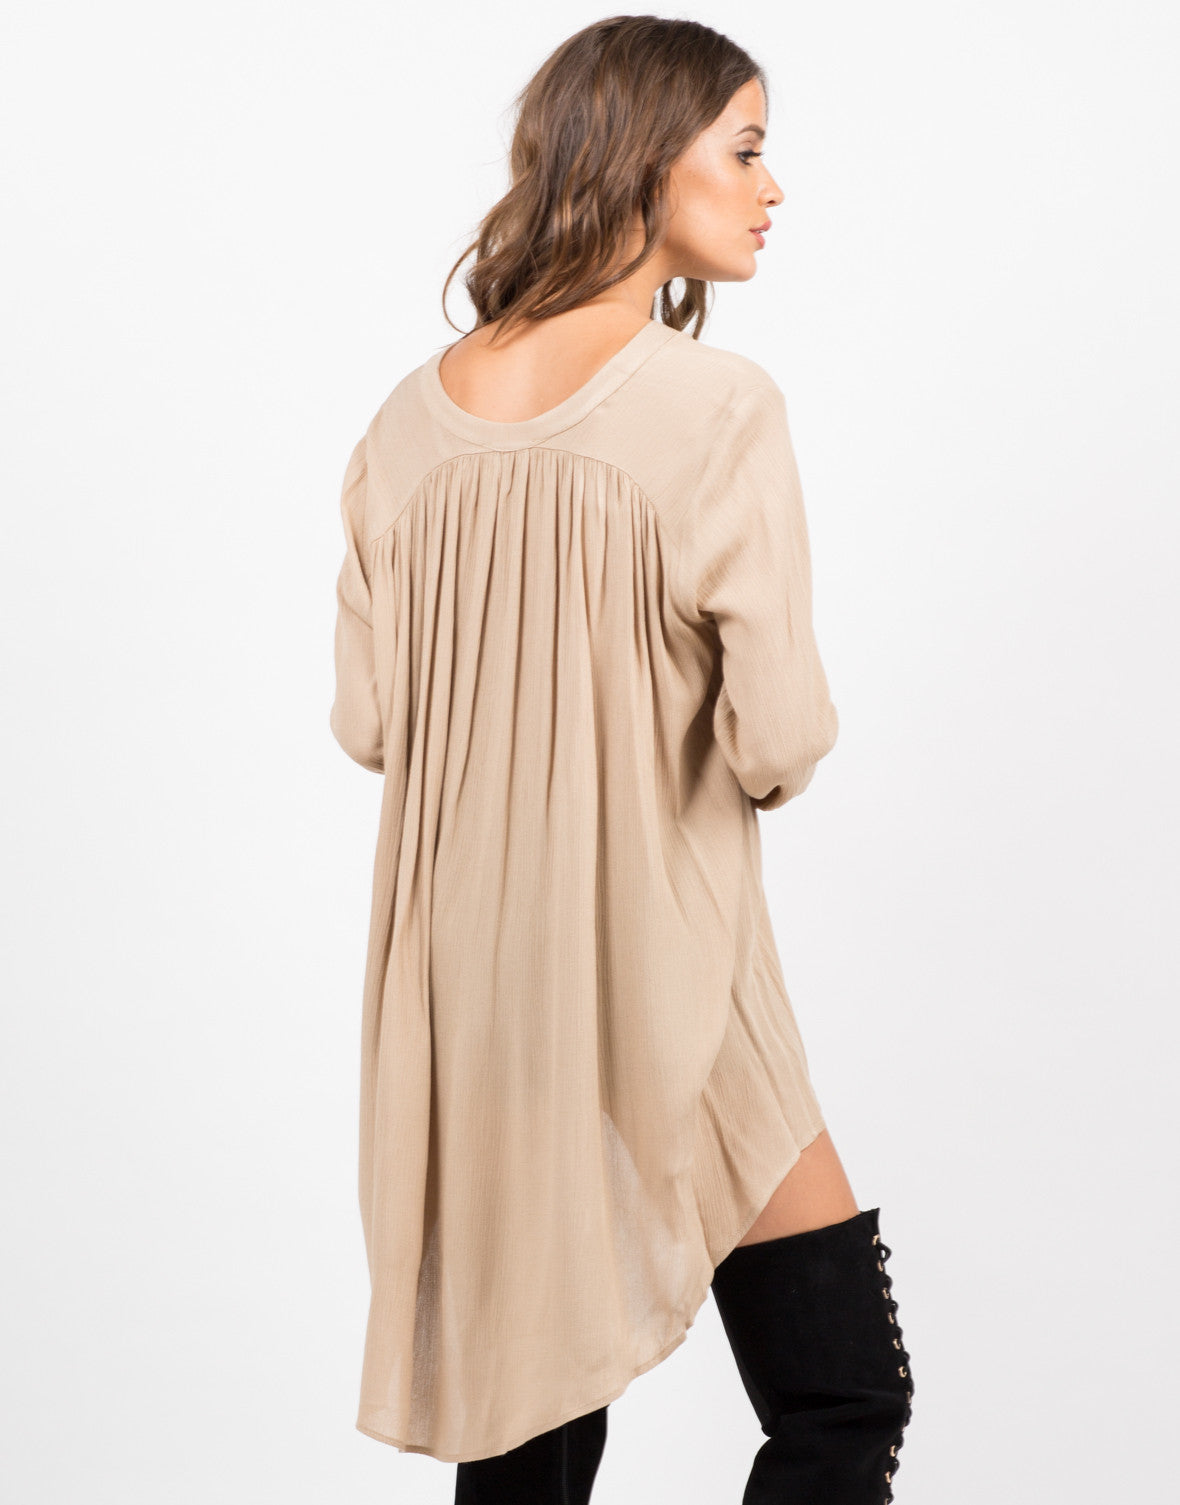 Back View of Button Down Tunic Blouse